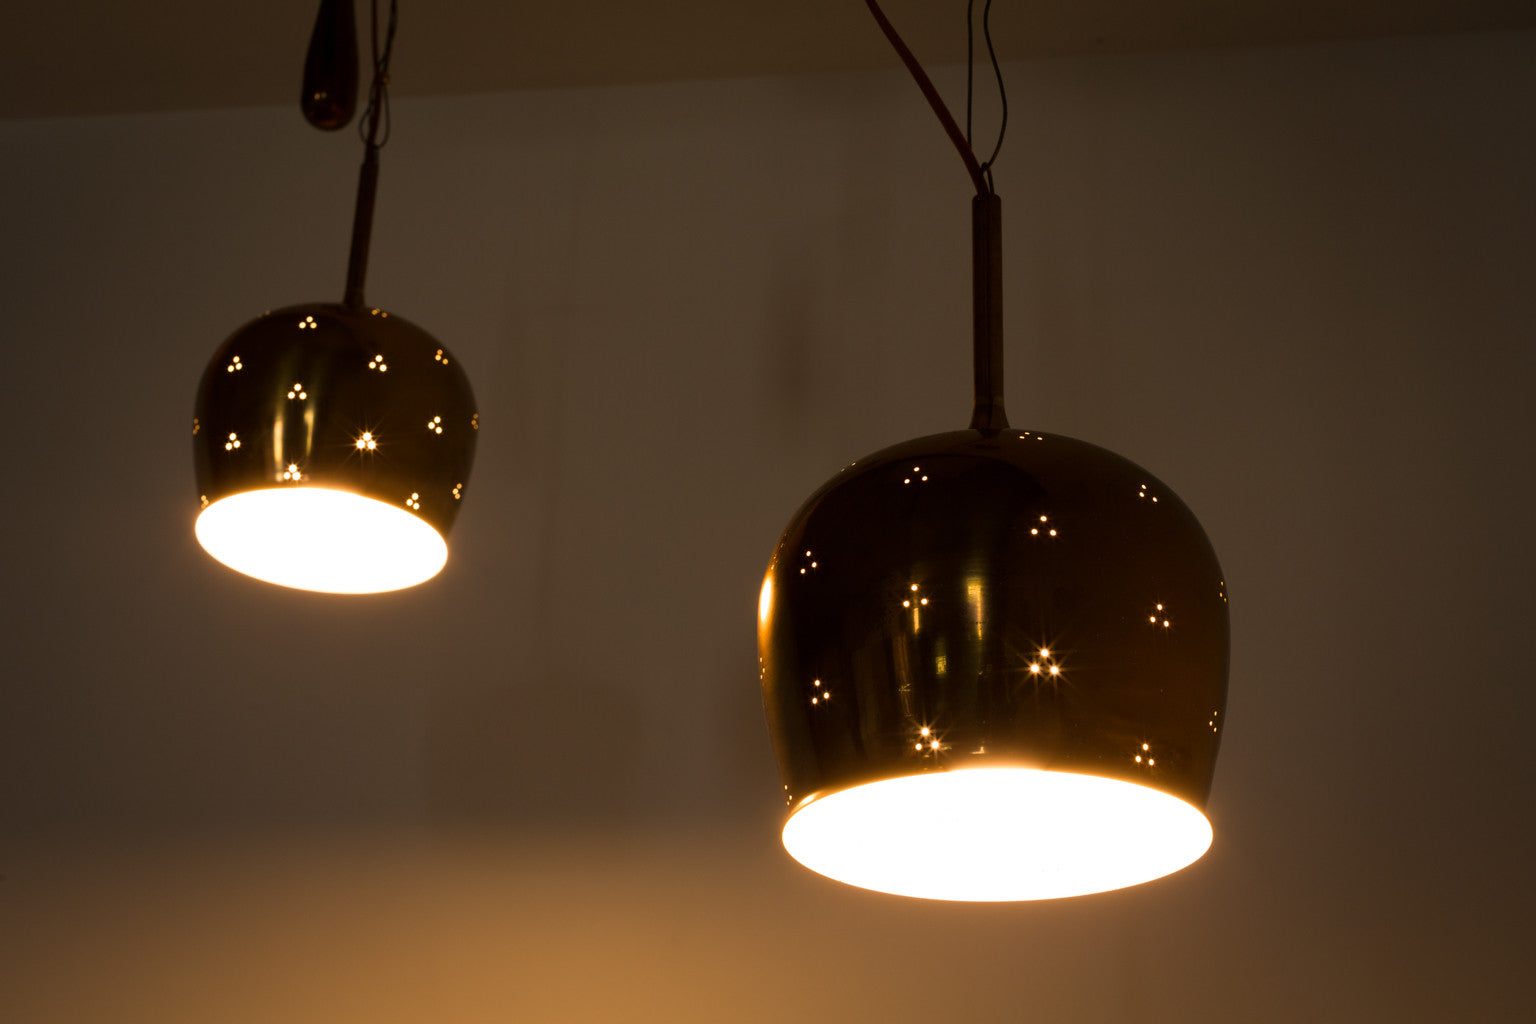 Paavo Tynell, Adjustable Counter Balance Pair of Pendant Lights, Model A1957 - The Exchange Int